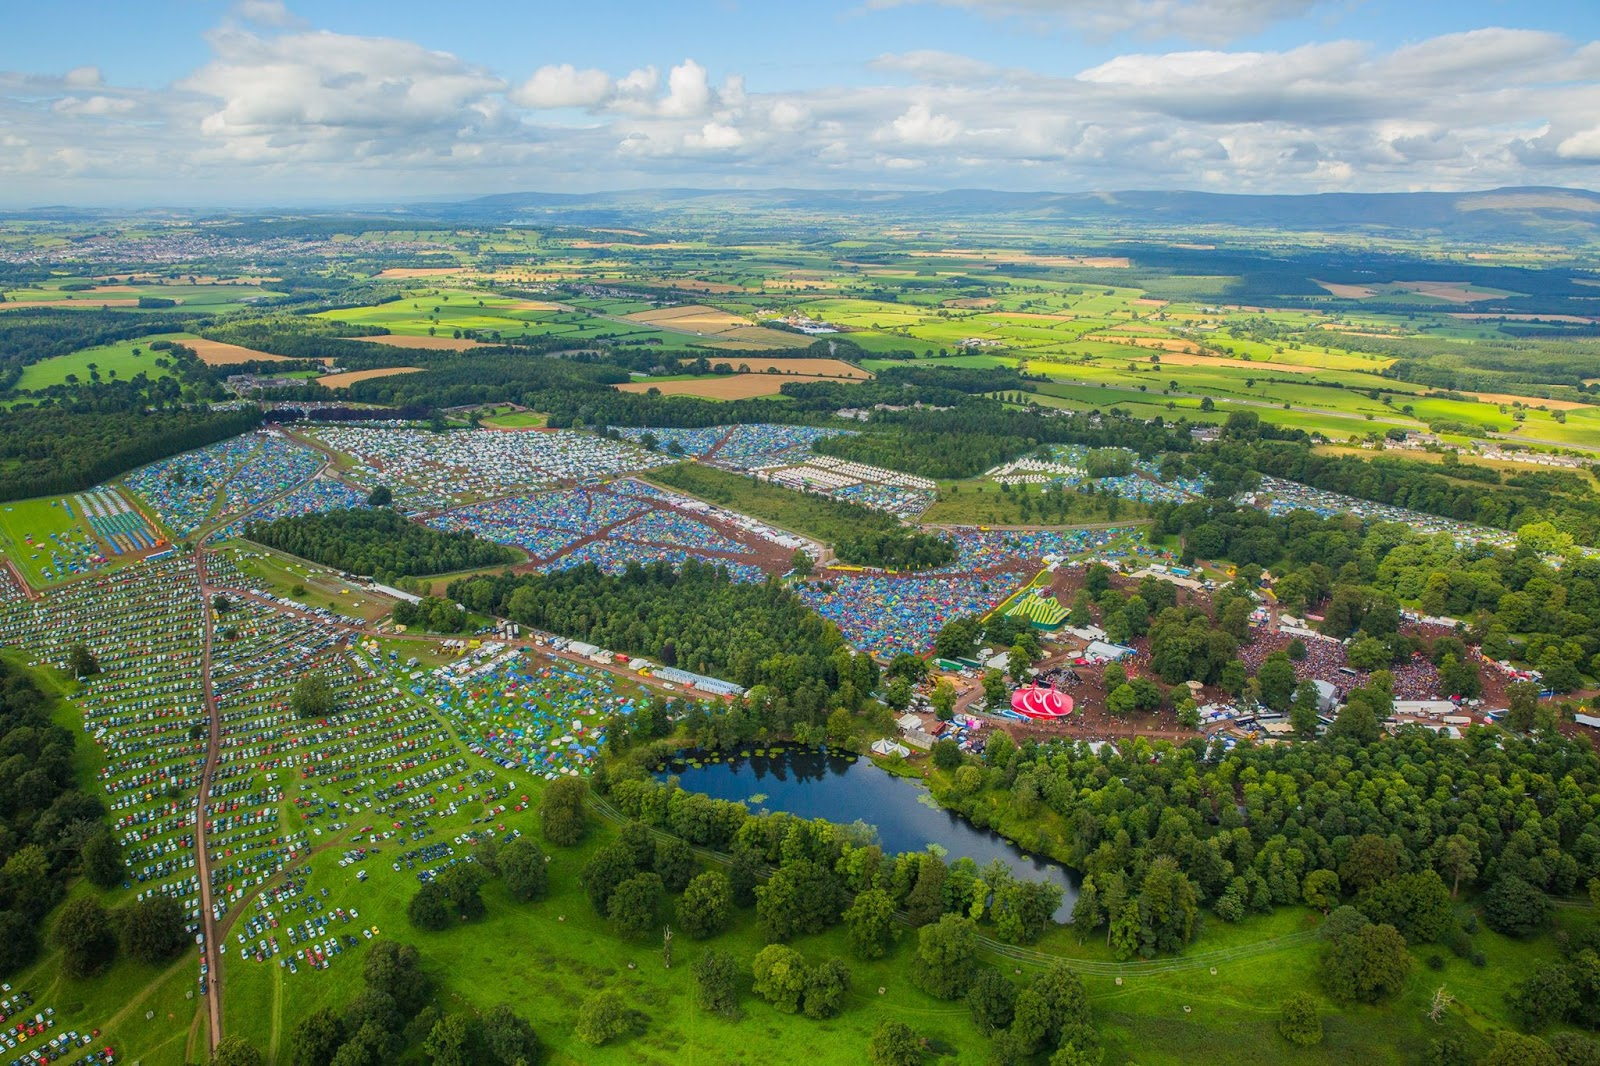 Kendal Calling Festival site